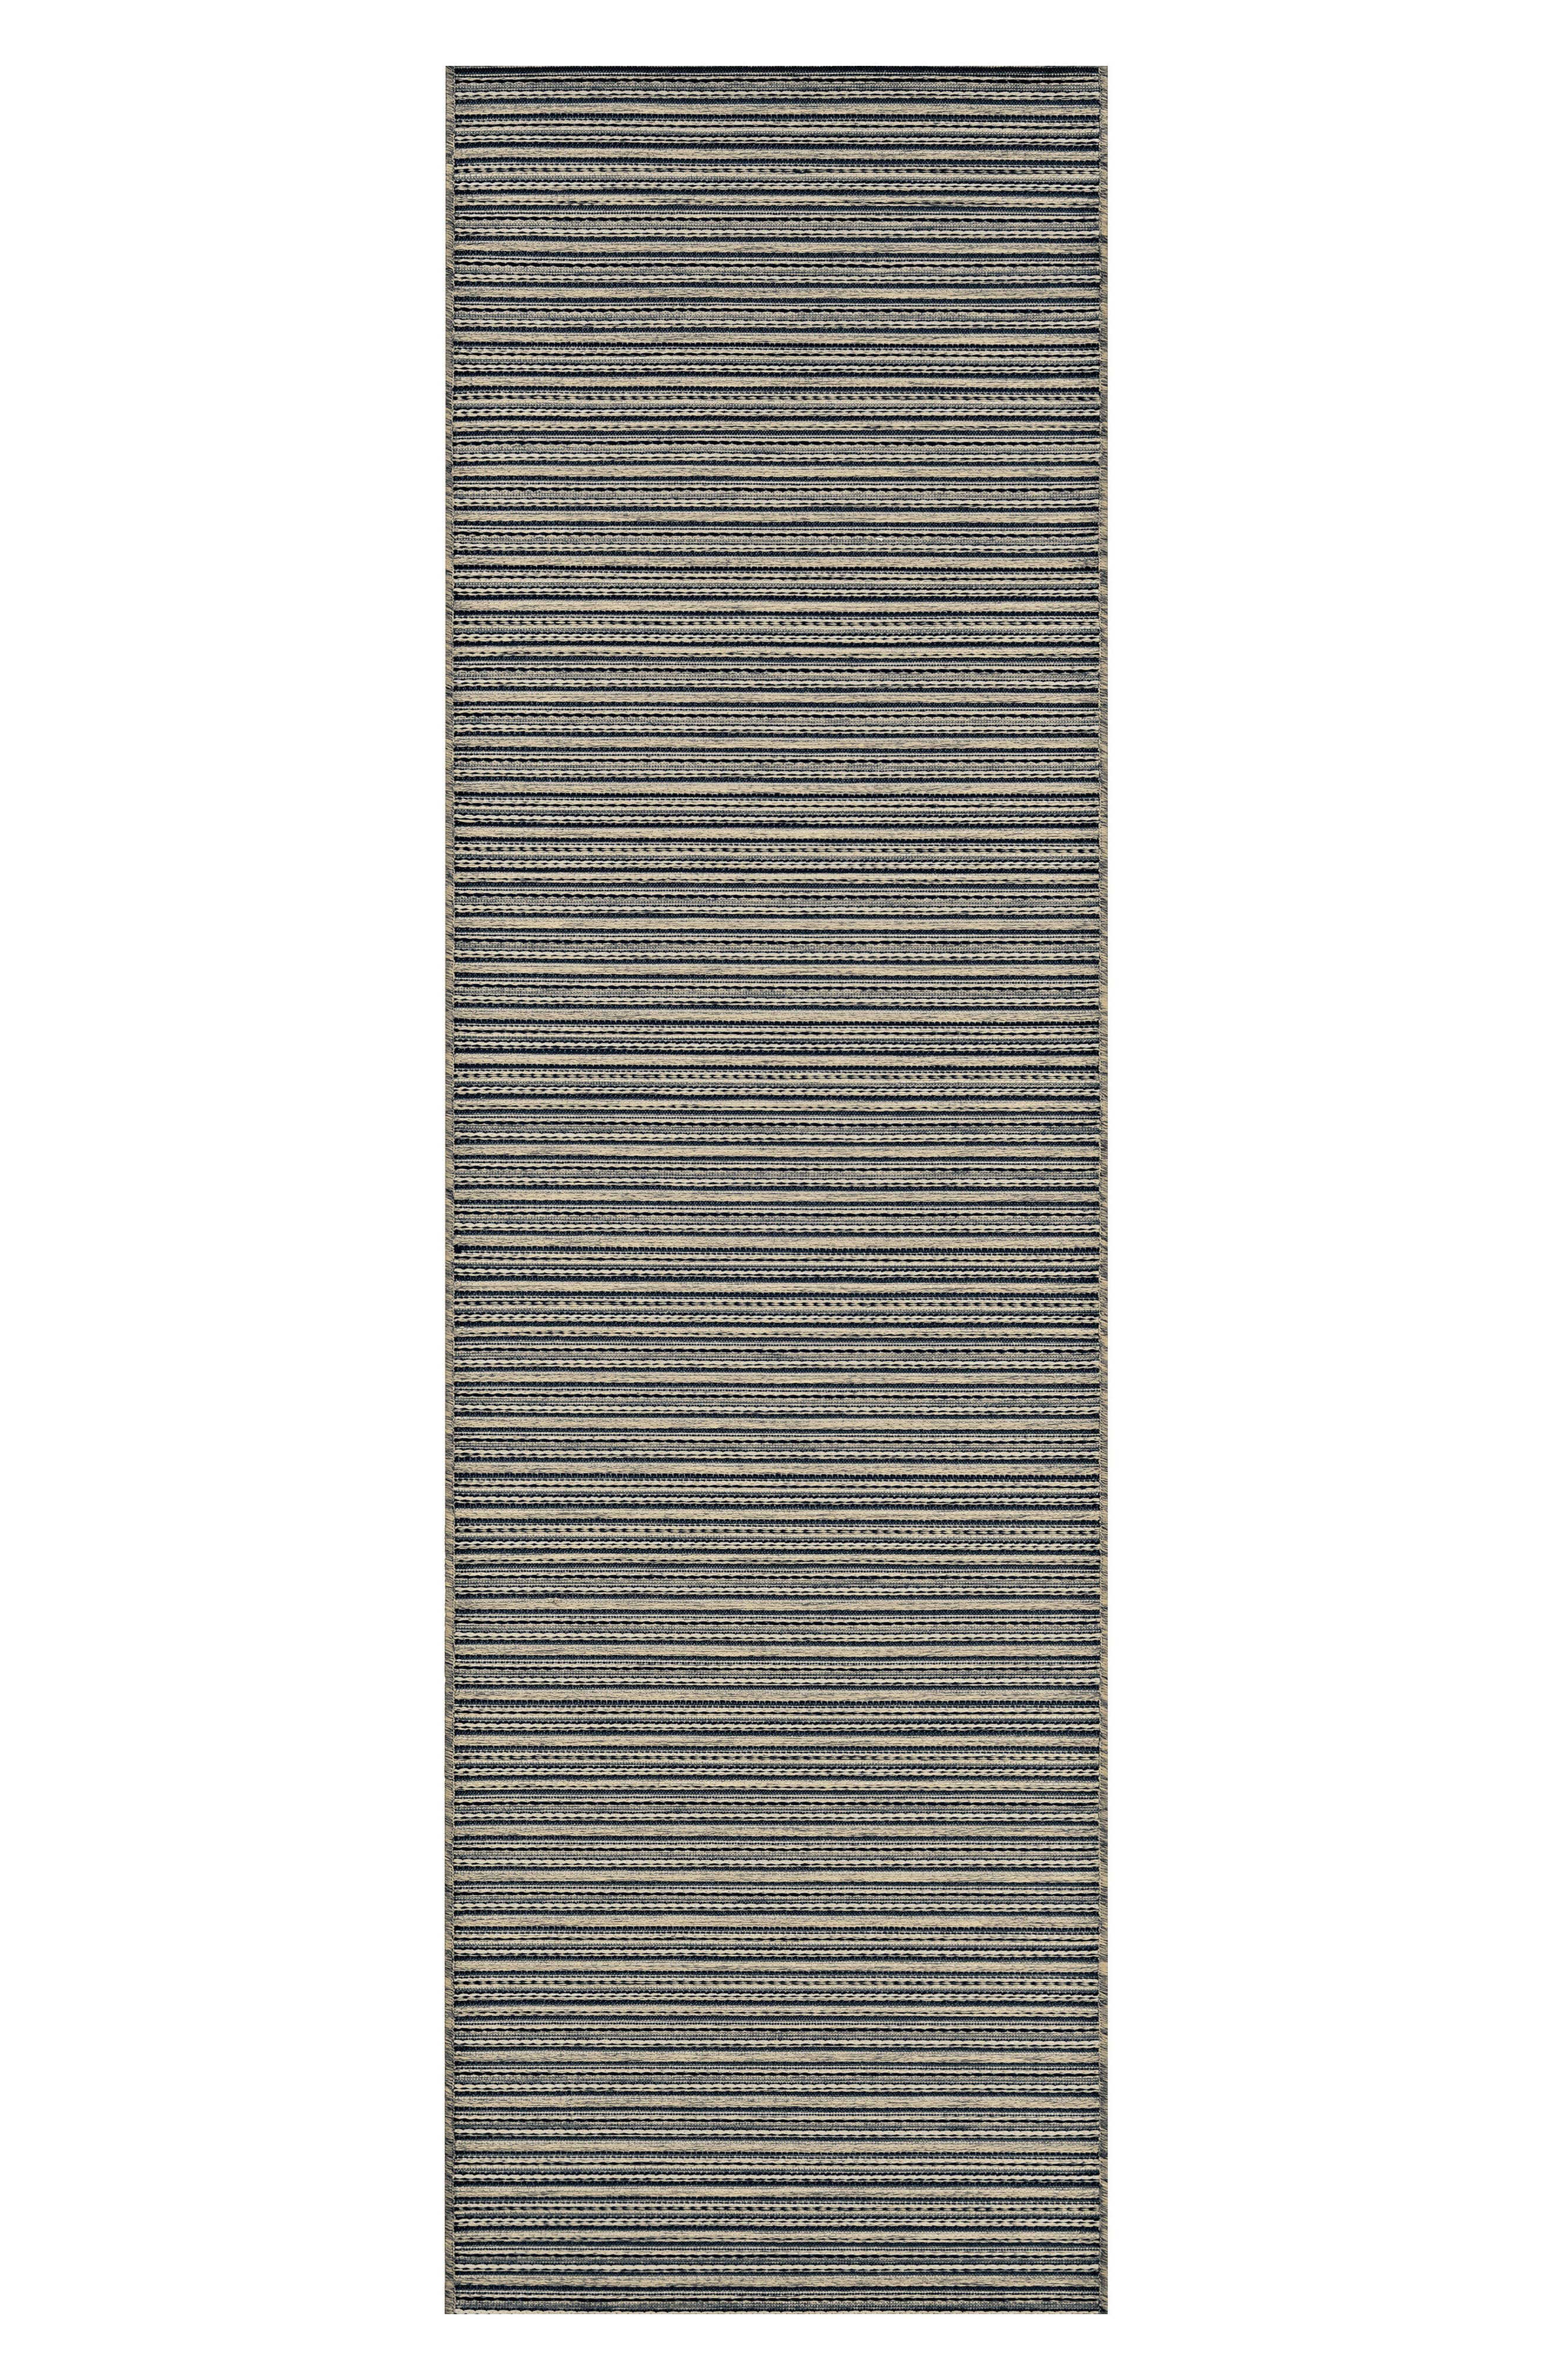 Harwich Indoor/Outdoor Rug,                             Alternate thumbnail 2, color,                             001